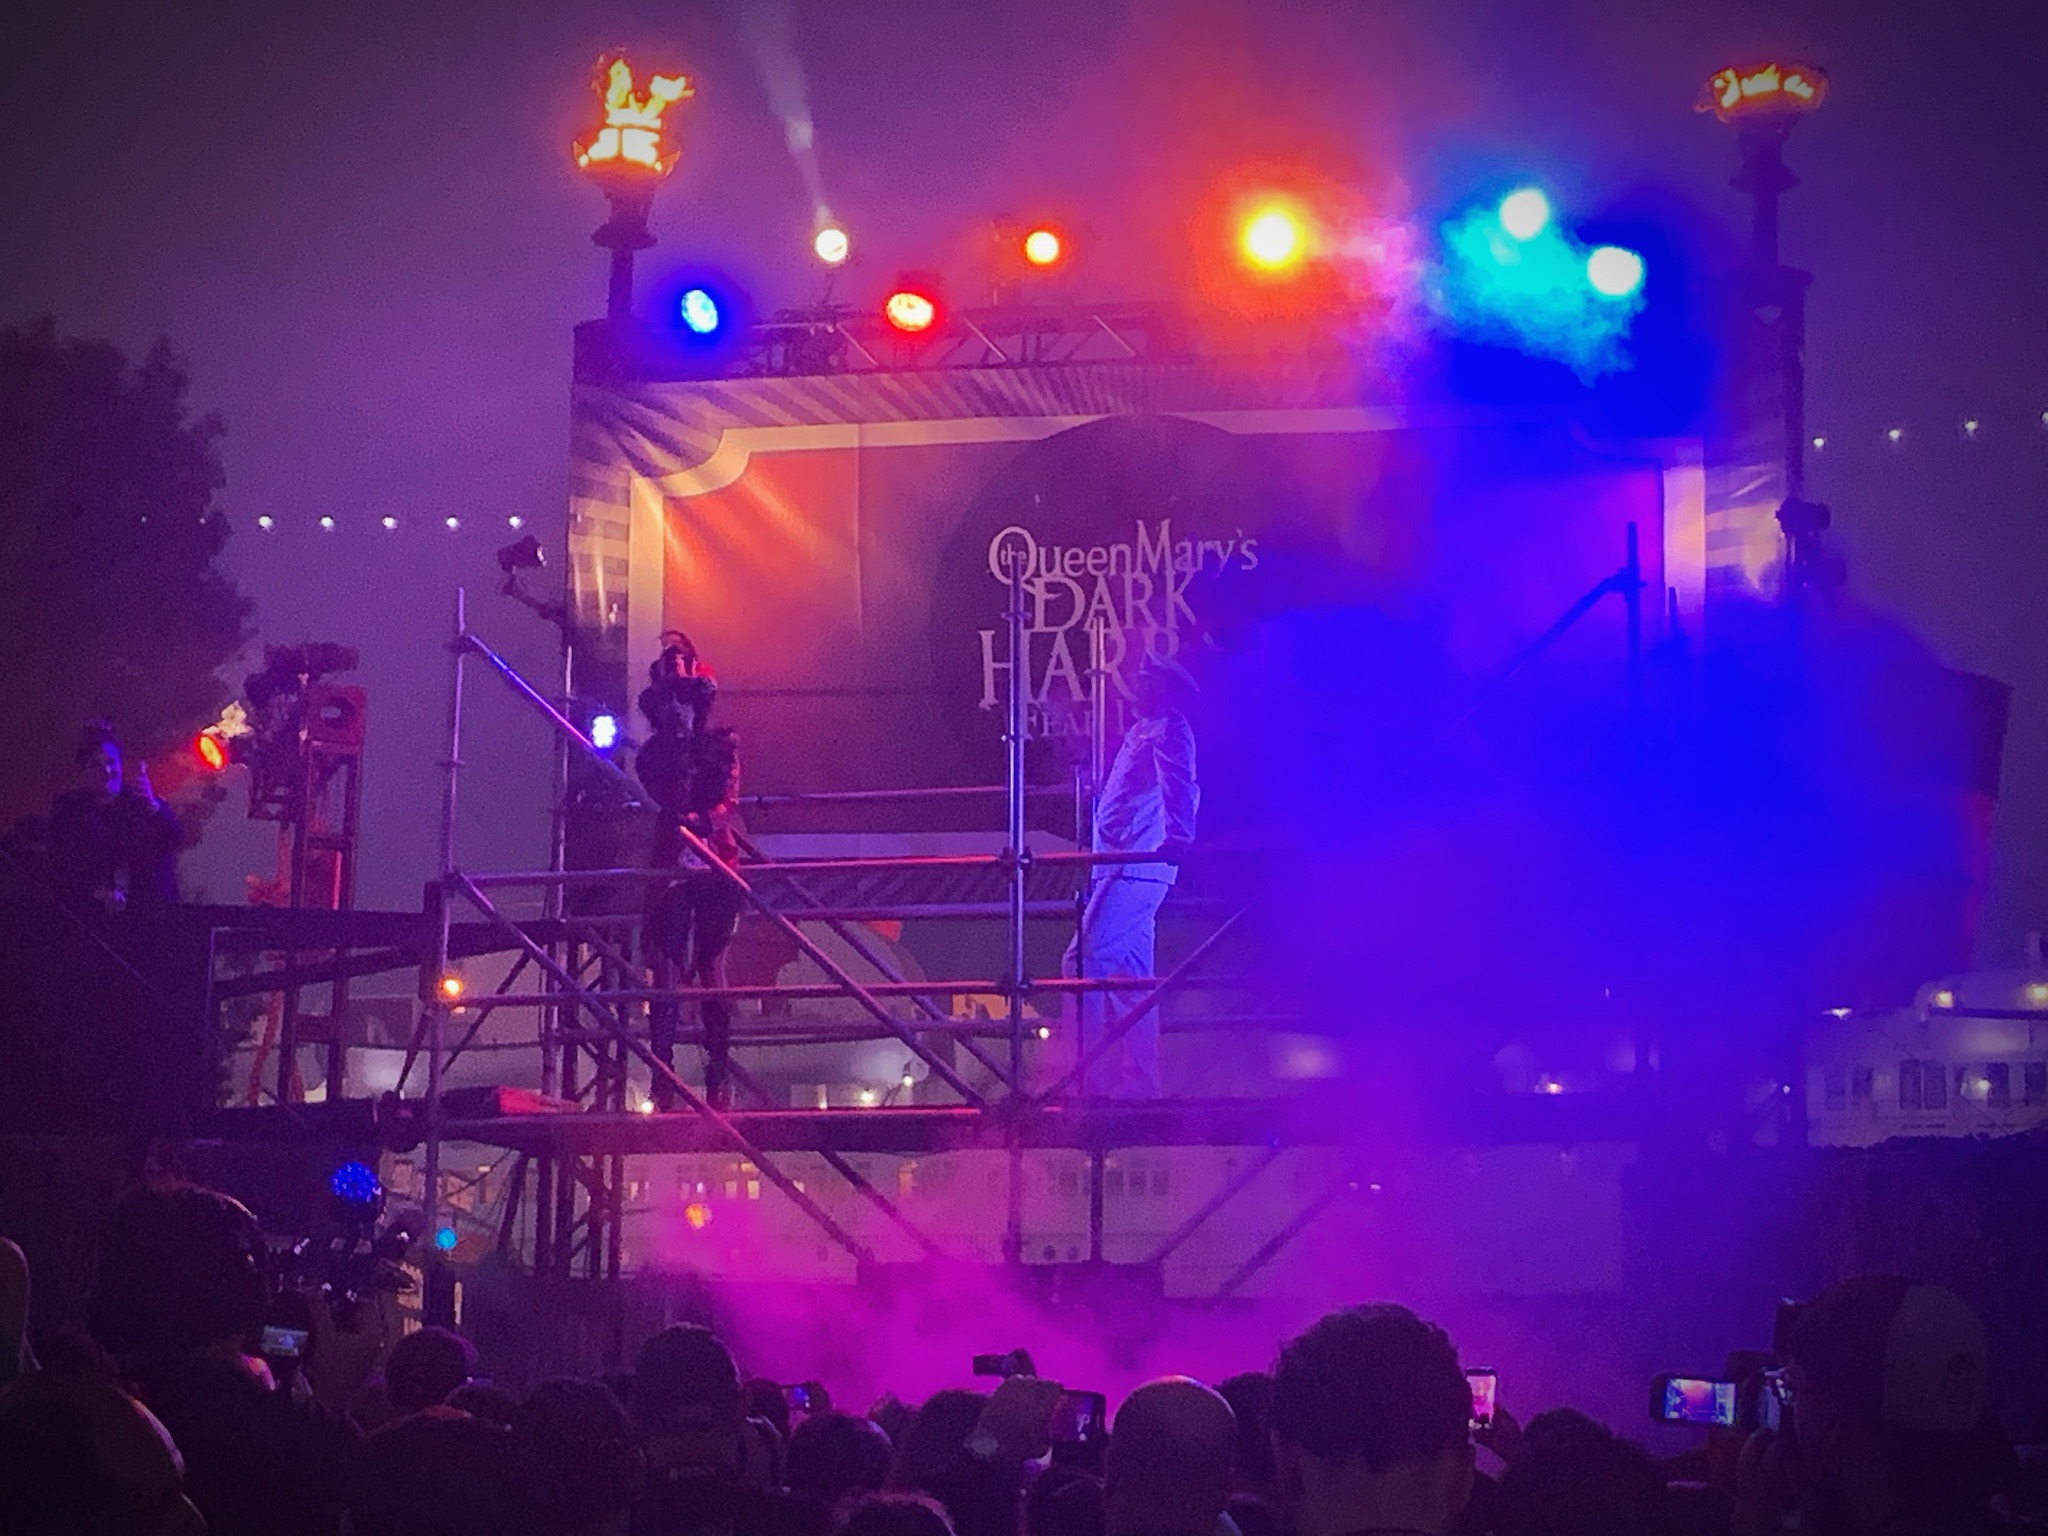 Haunt Review: The Queen Mary's Dark Harbor